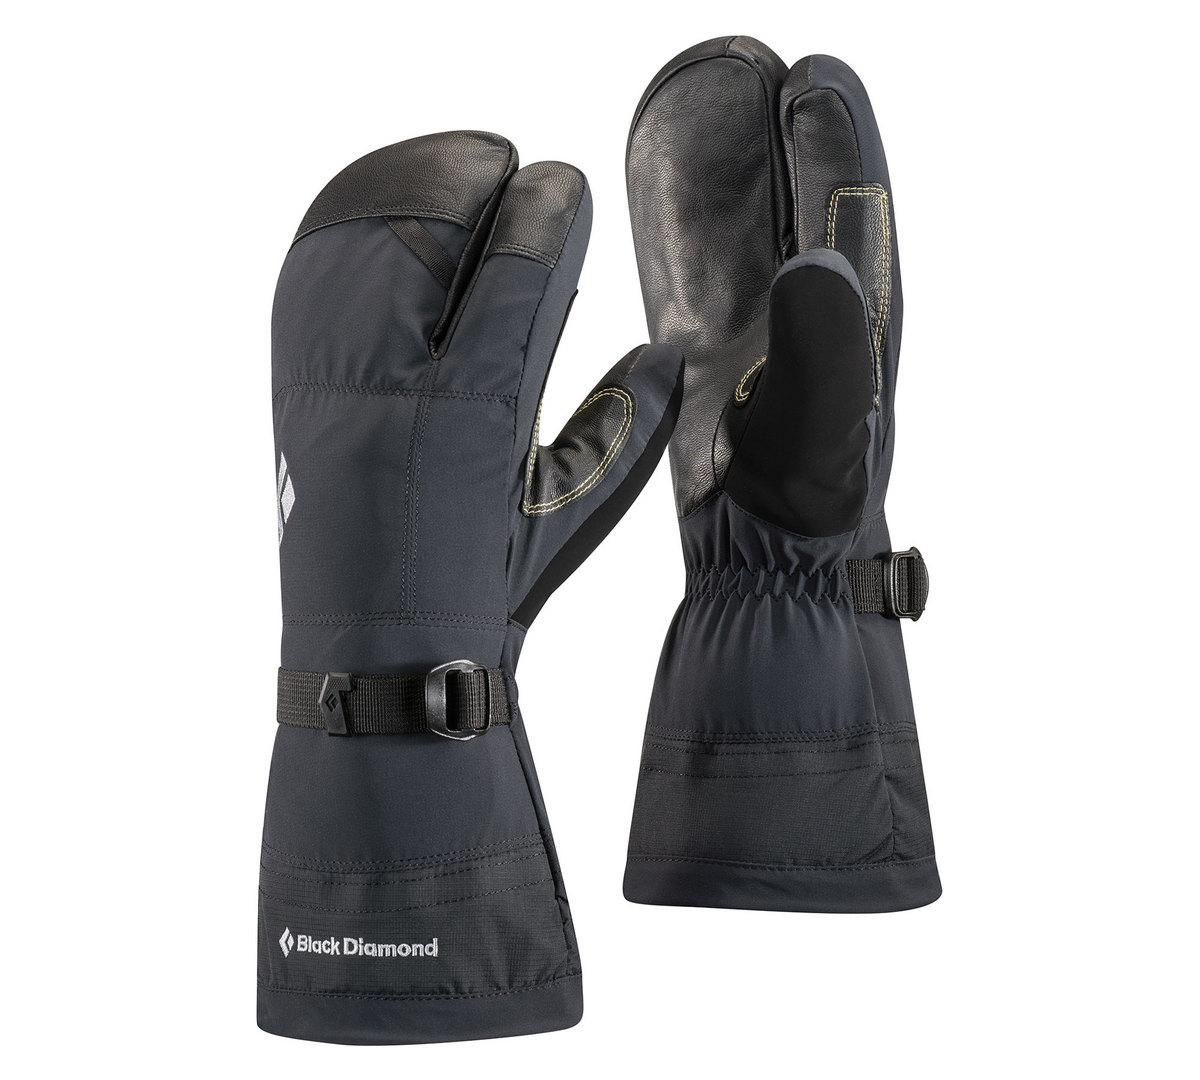 Black Diamond Men's Soloist Finger Gloves